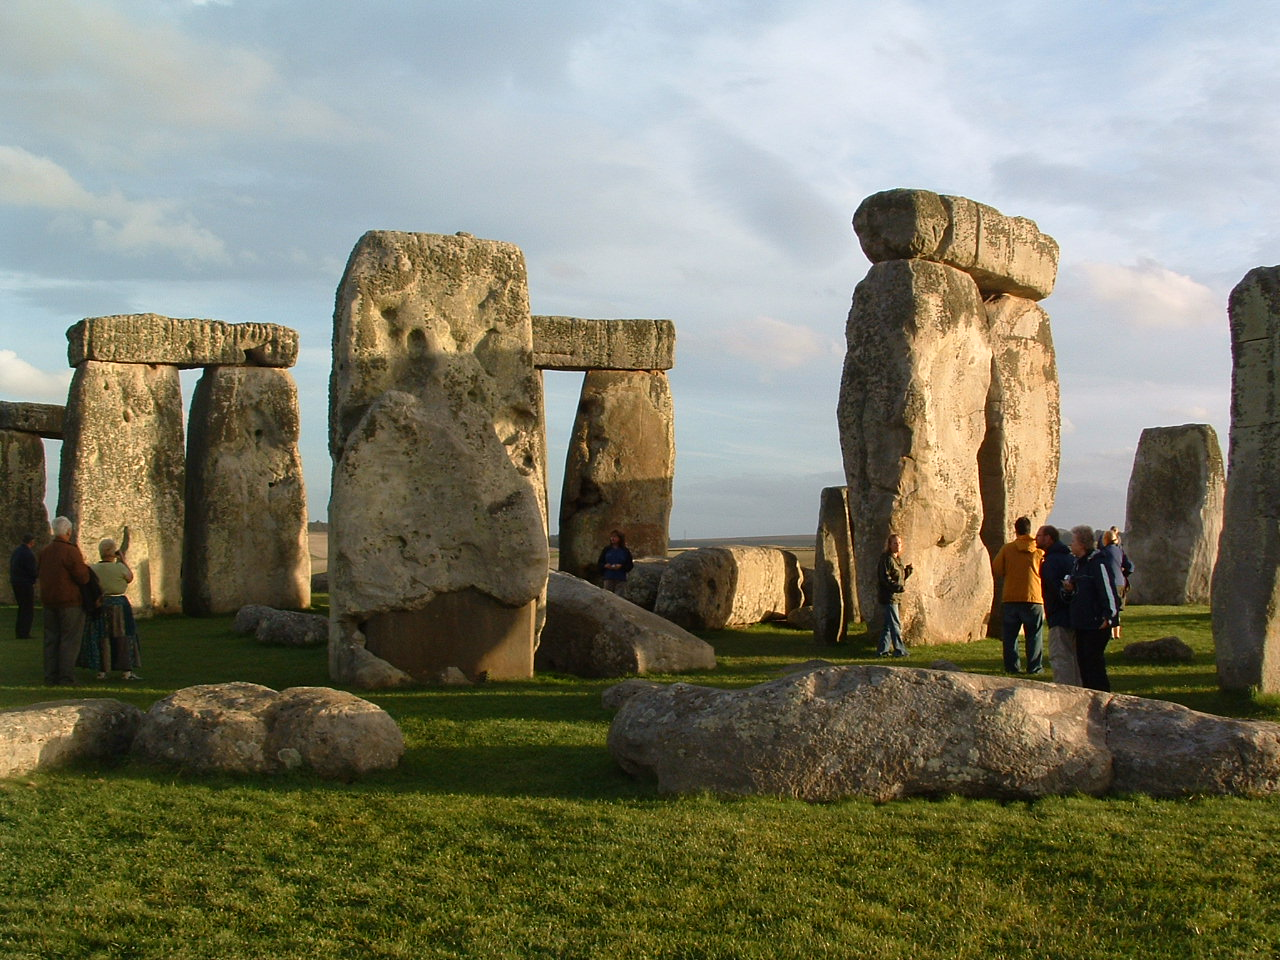 An overview of the stonehenge and the people behind it